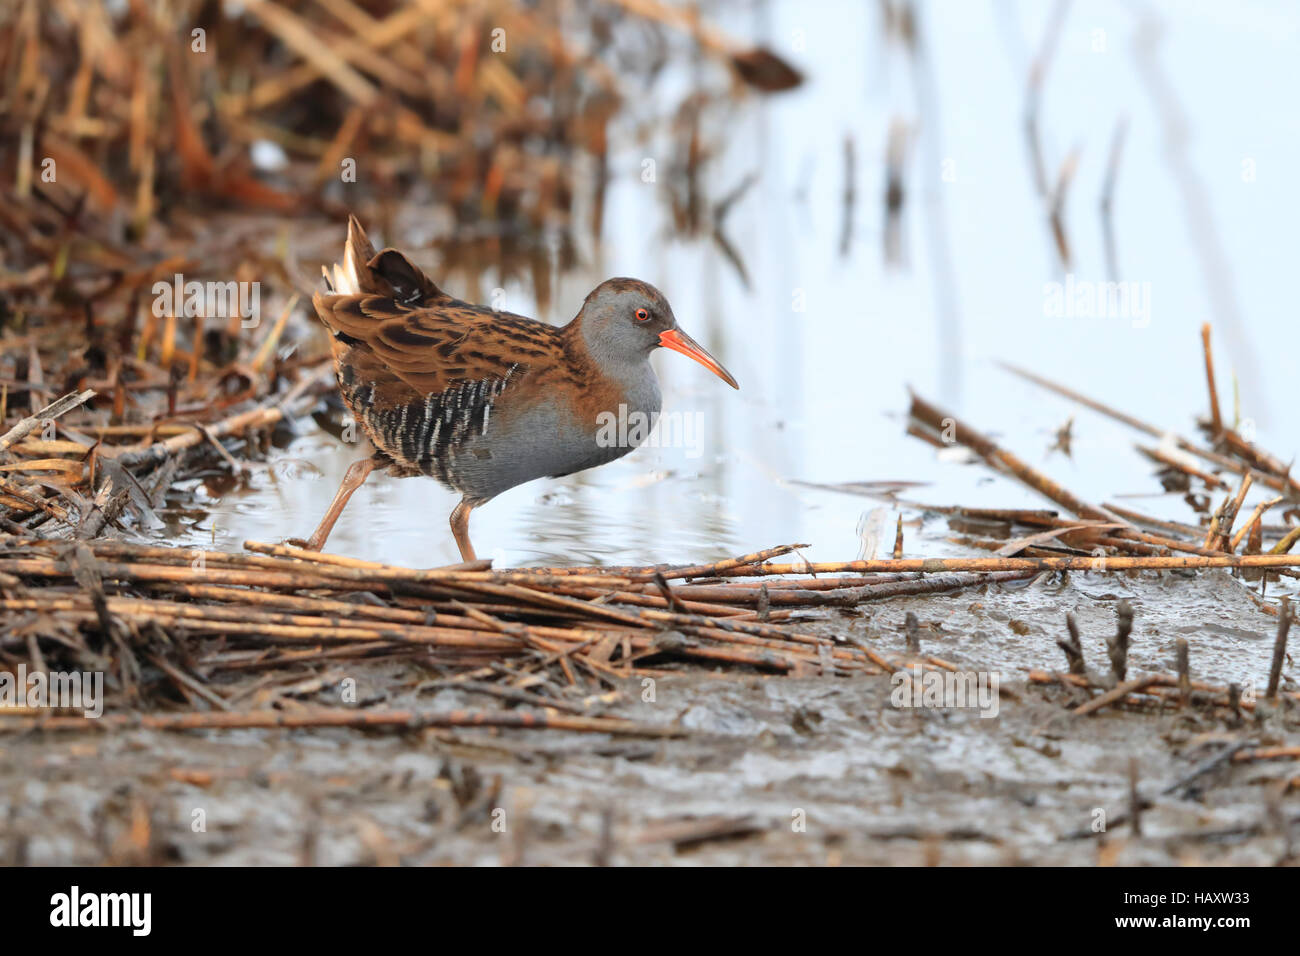 Adult Water Rail (Rallus aquaticus) walking across the shore of a reedbed pool - Stock Image